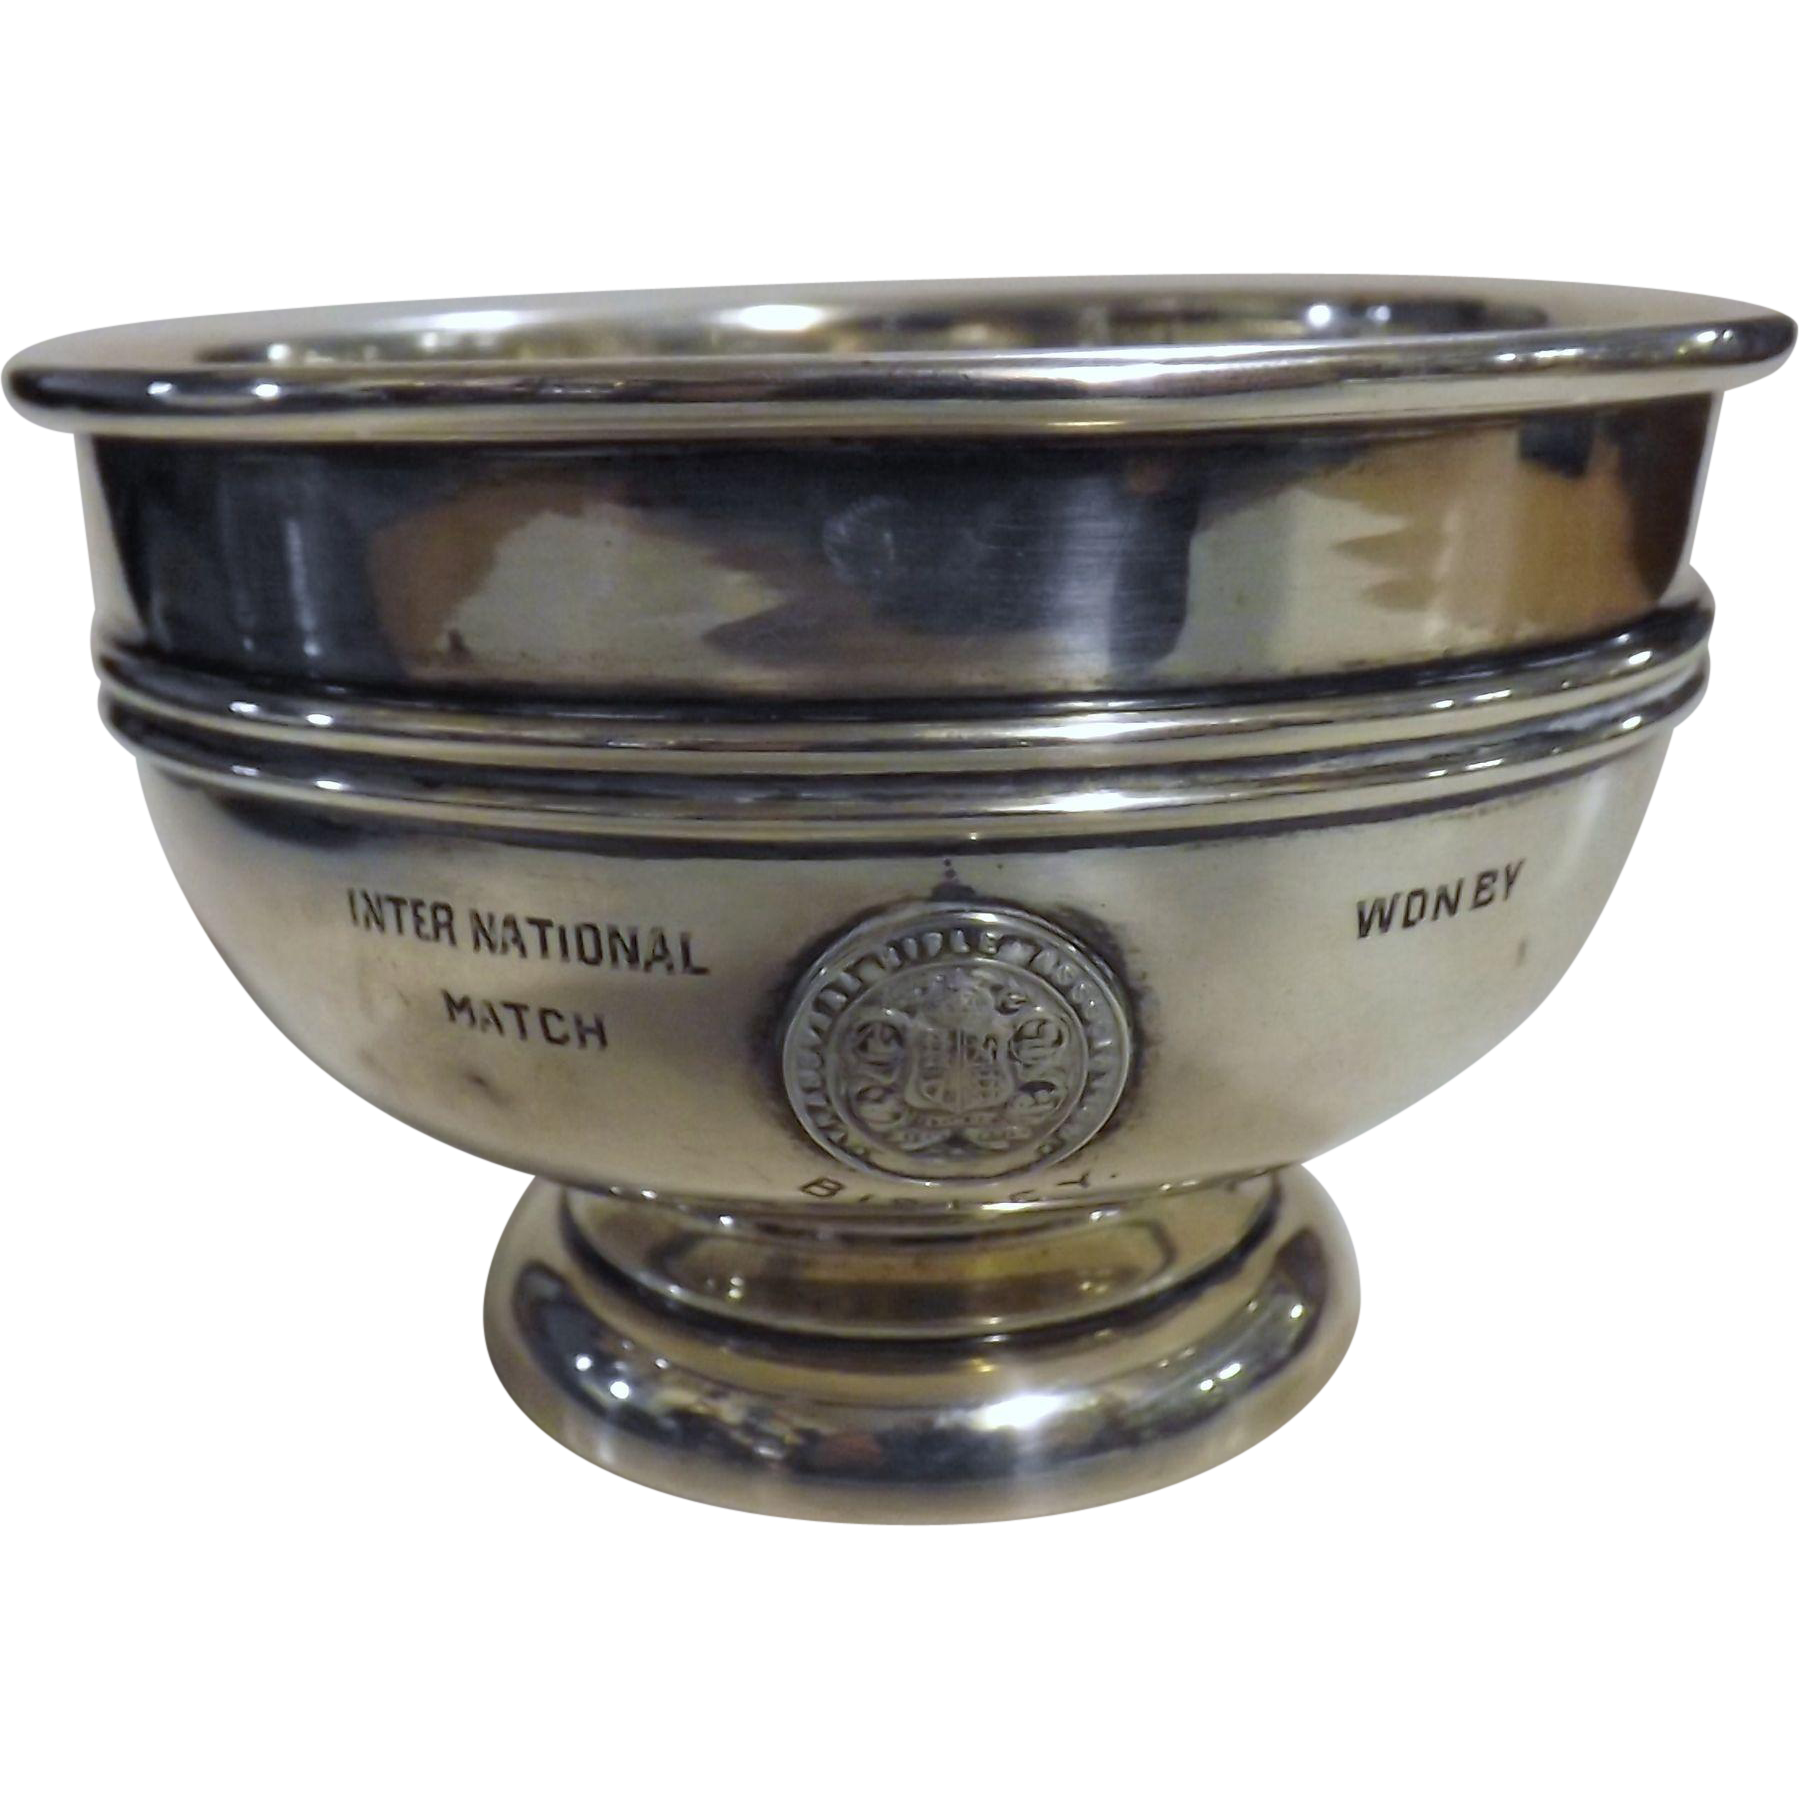 Transvaal Rifle Association International Match Cup - 1913 Trophy